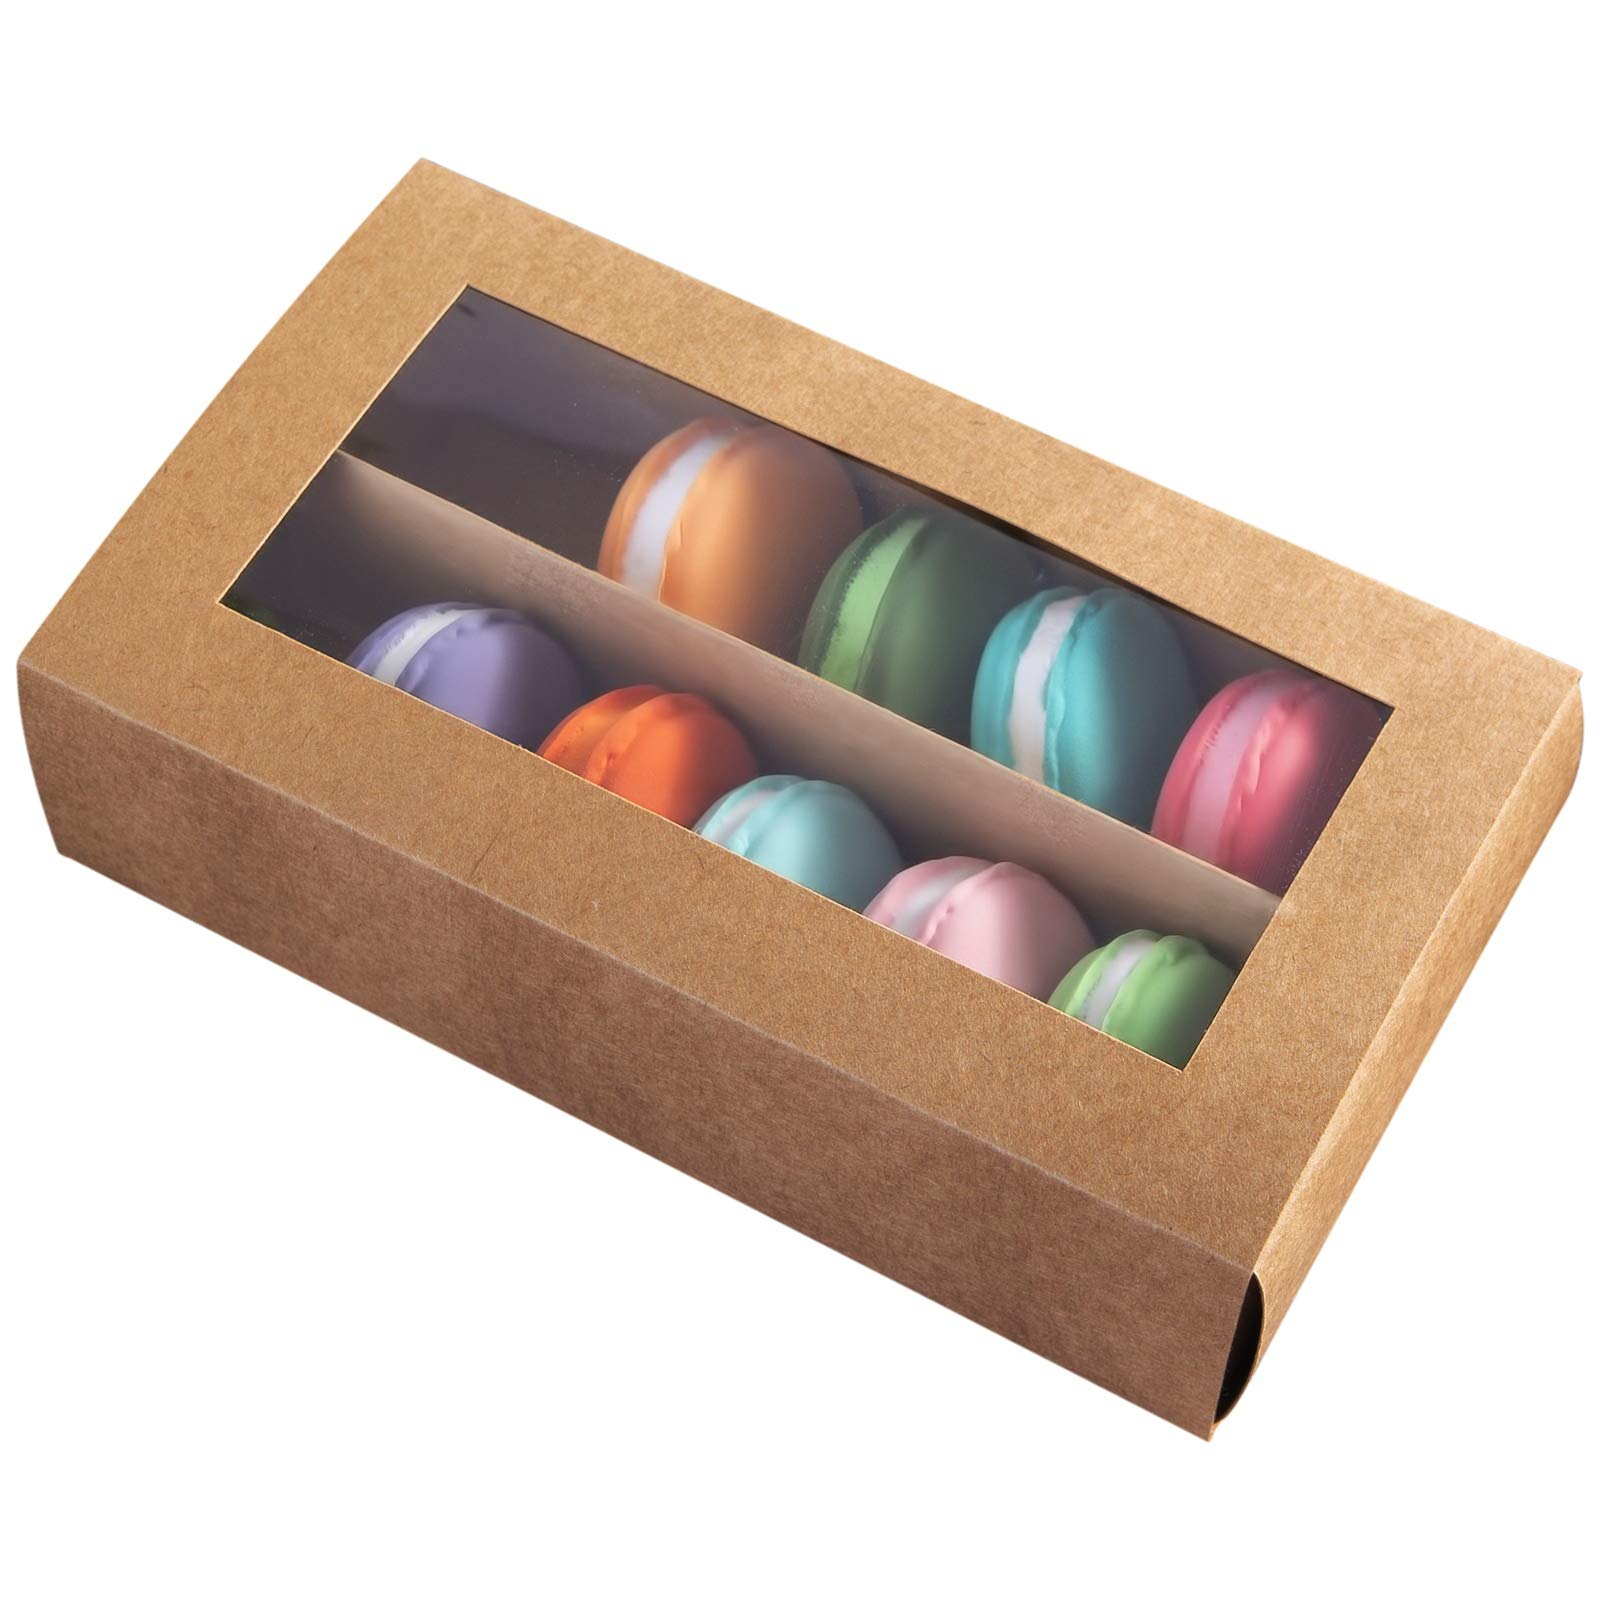 [30pcs]Brown Macarons Boxes of 12 Cavity, 8inch Large Macaron Container Kraft Cardboard Packaging Bakery Box with Clear Window Lid also fits for Muffins and Cookie 8inch×5inch×2 inch,Pack of 30